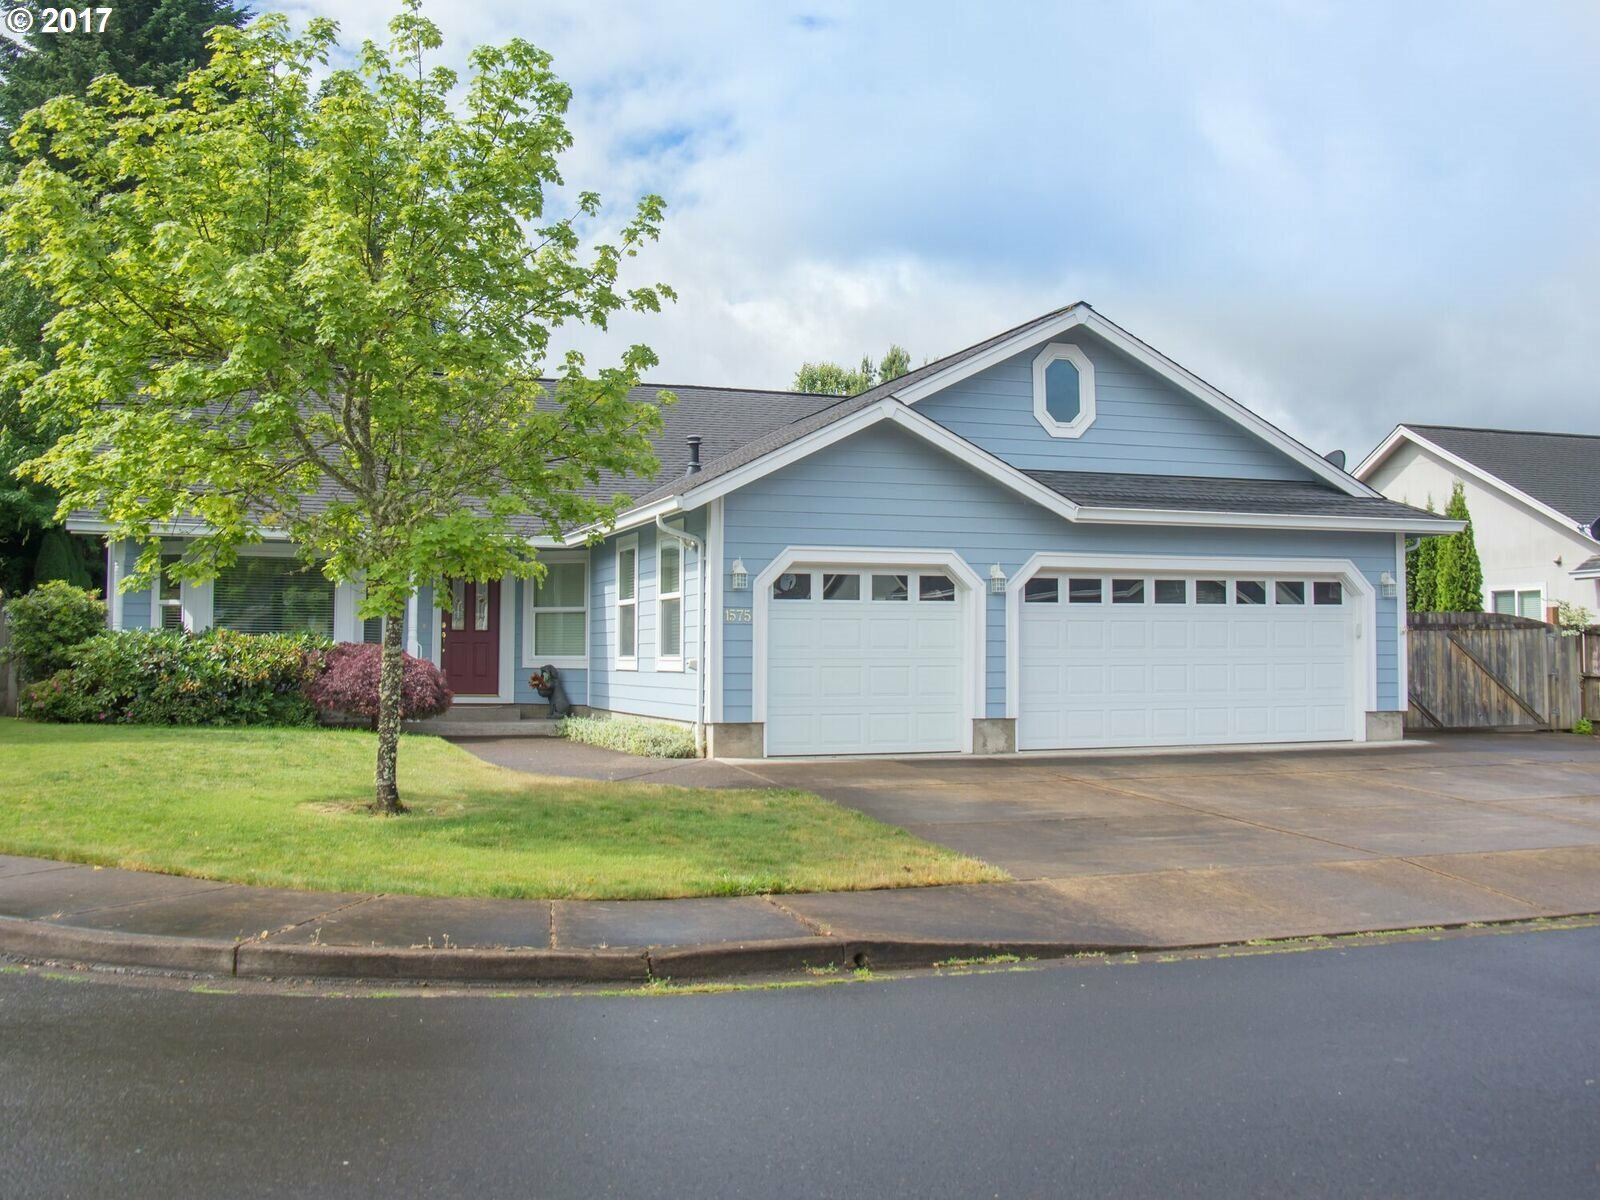 1575 Fairview Pl, Cottage Grove, OR - USA (photo 1)